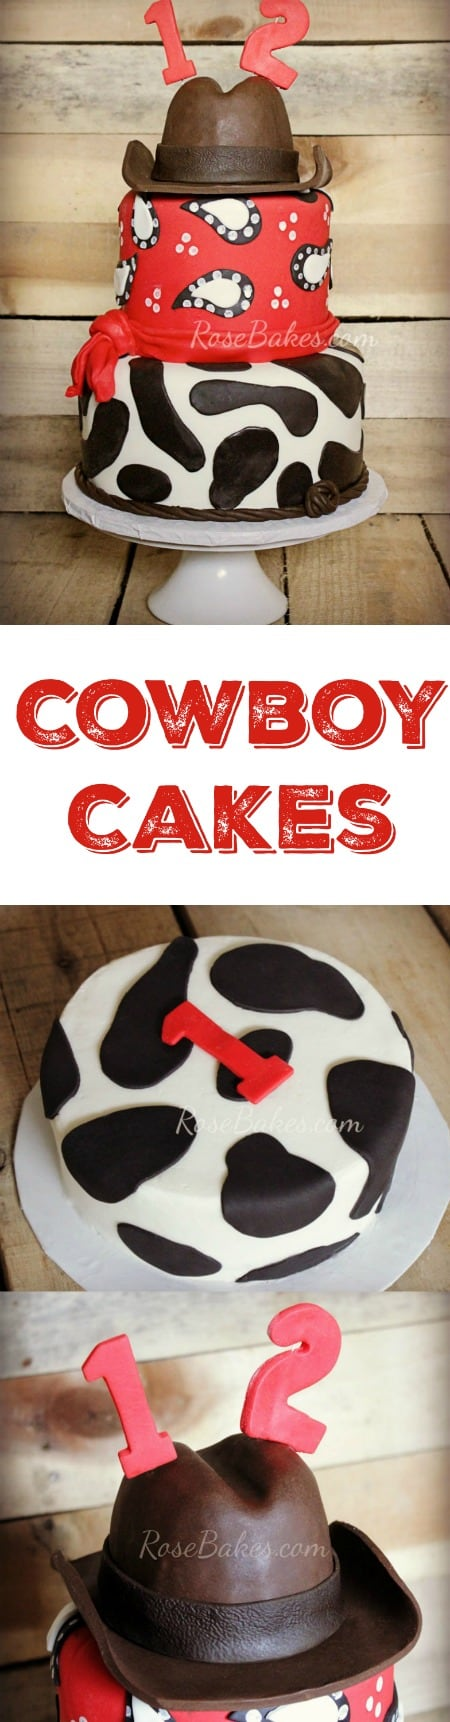 Cowboy Cakes and Smash Cakes